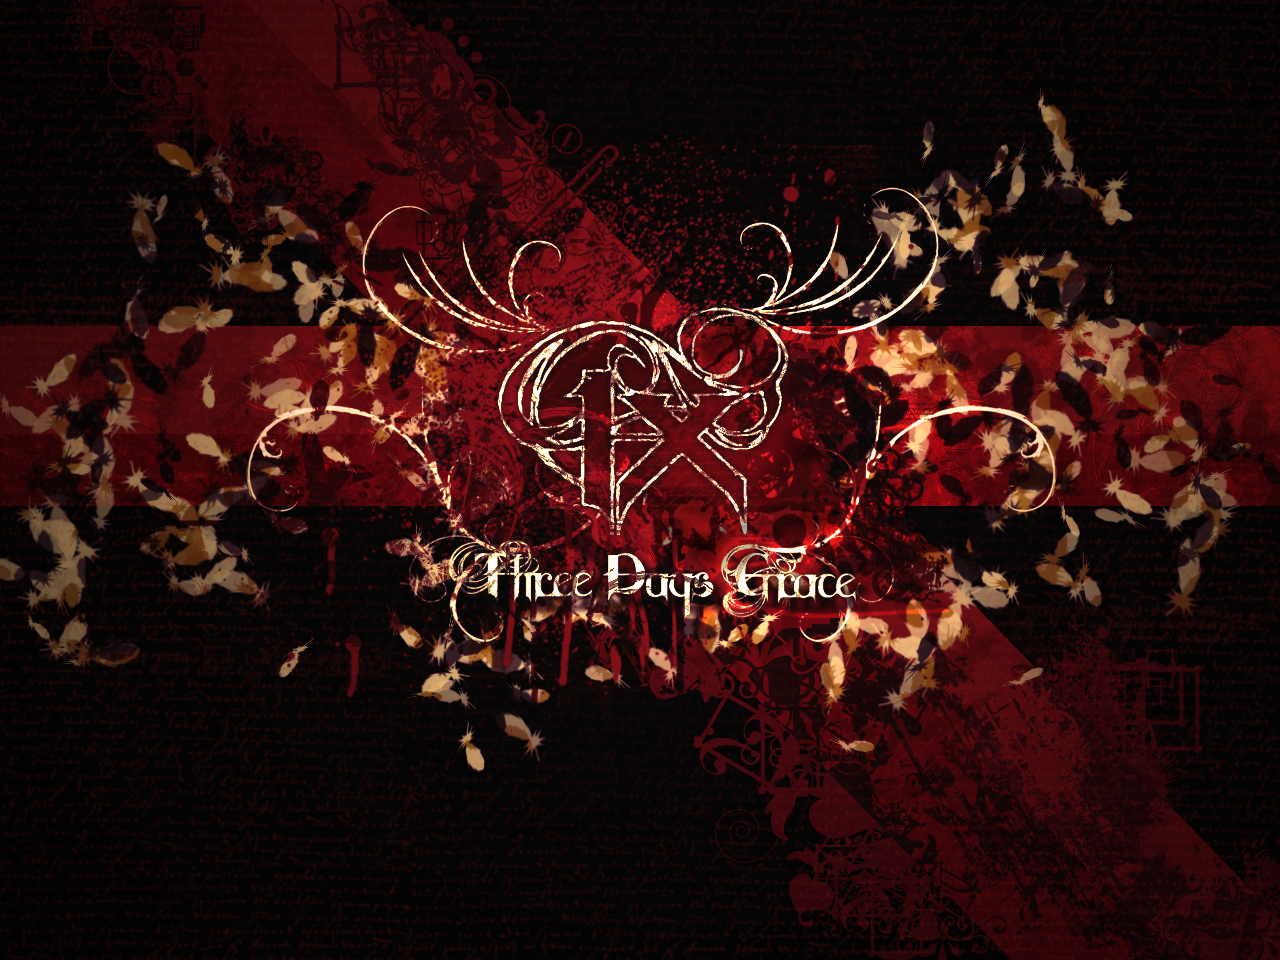 45] Three Days Grace Wallpaper HD on WallpaperSafari 1280x960